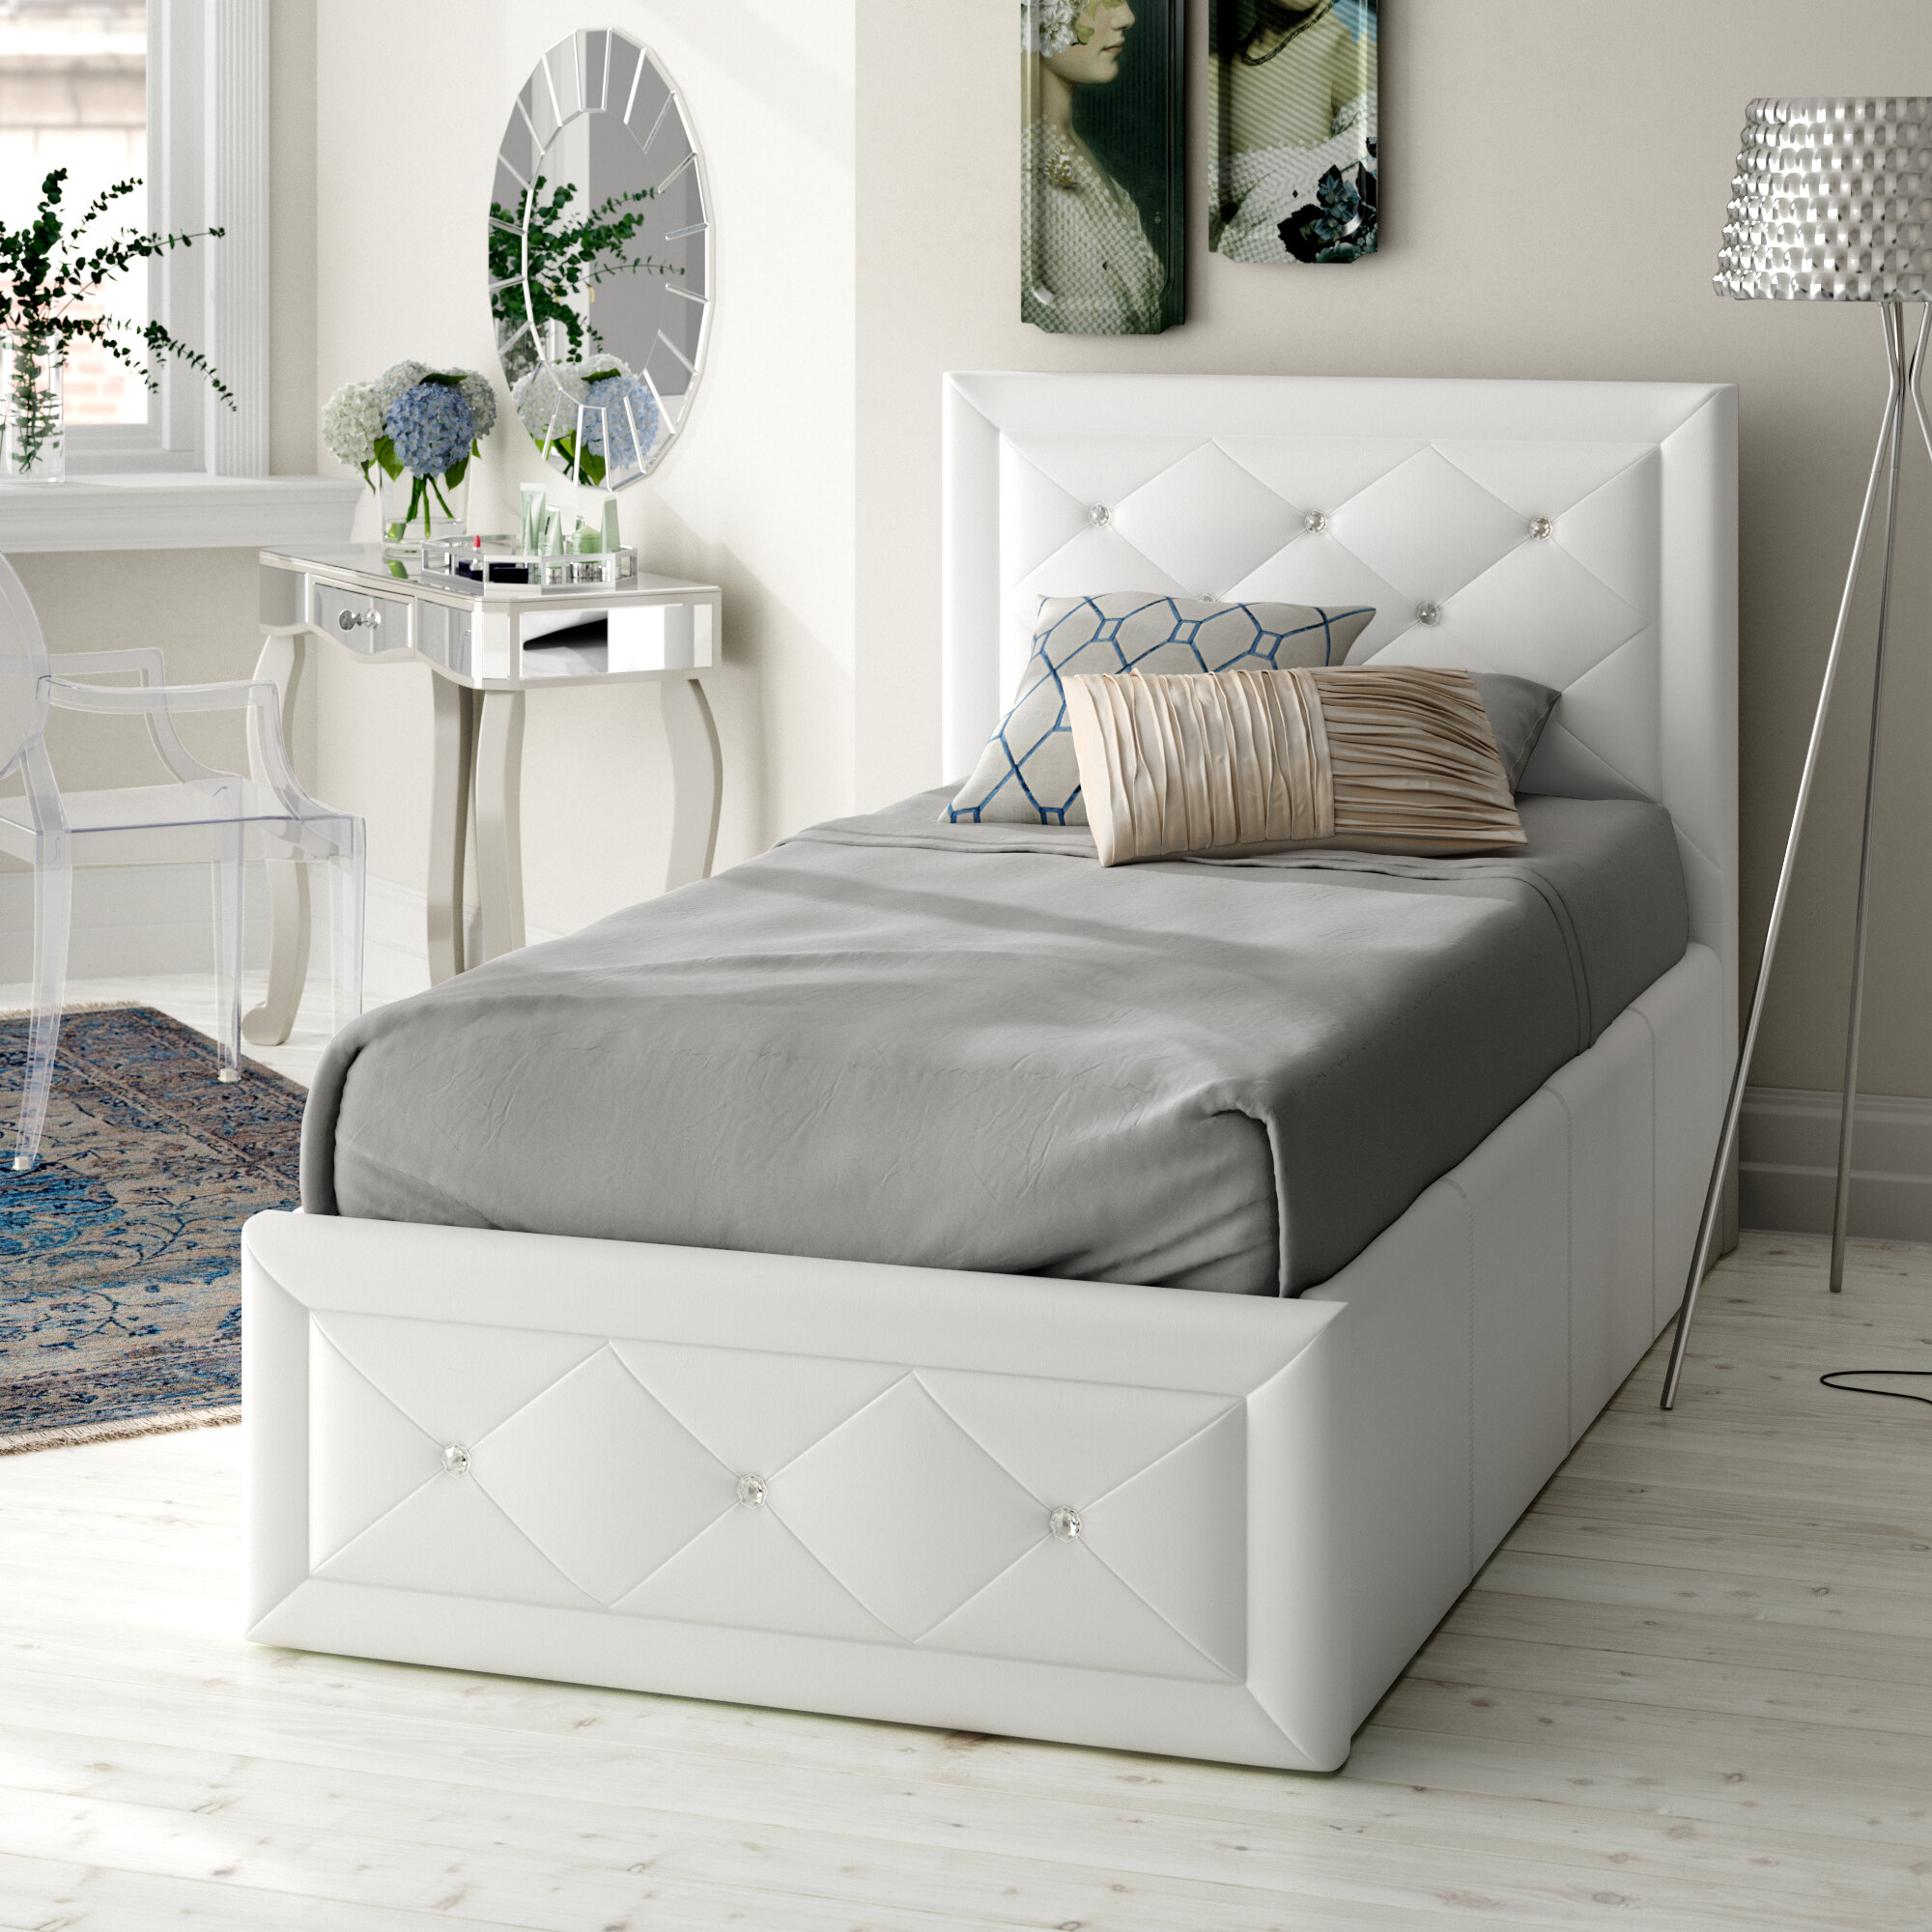 Fairmont Park Anatase Crystal Ottoman Bed Reviews Wayfair Co Uk